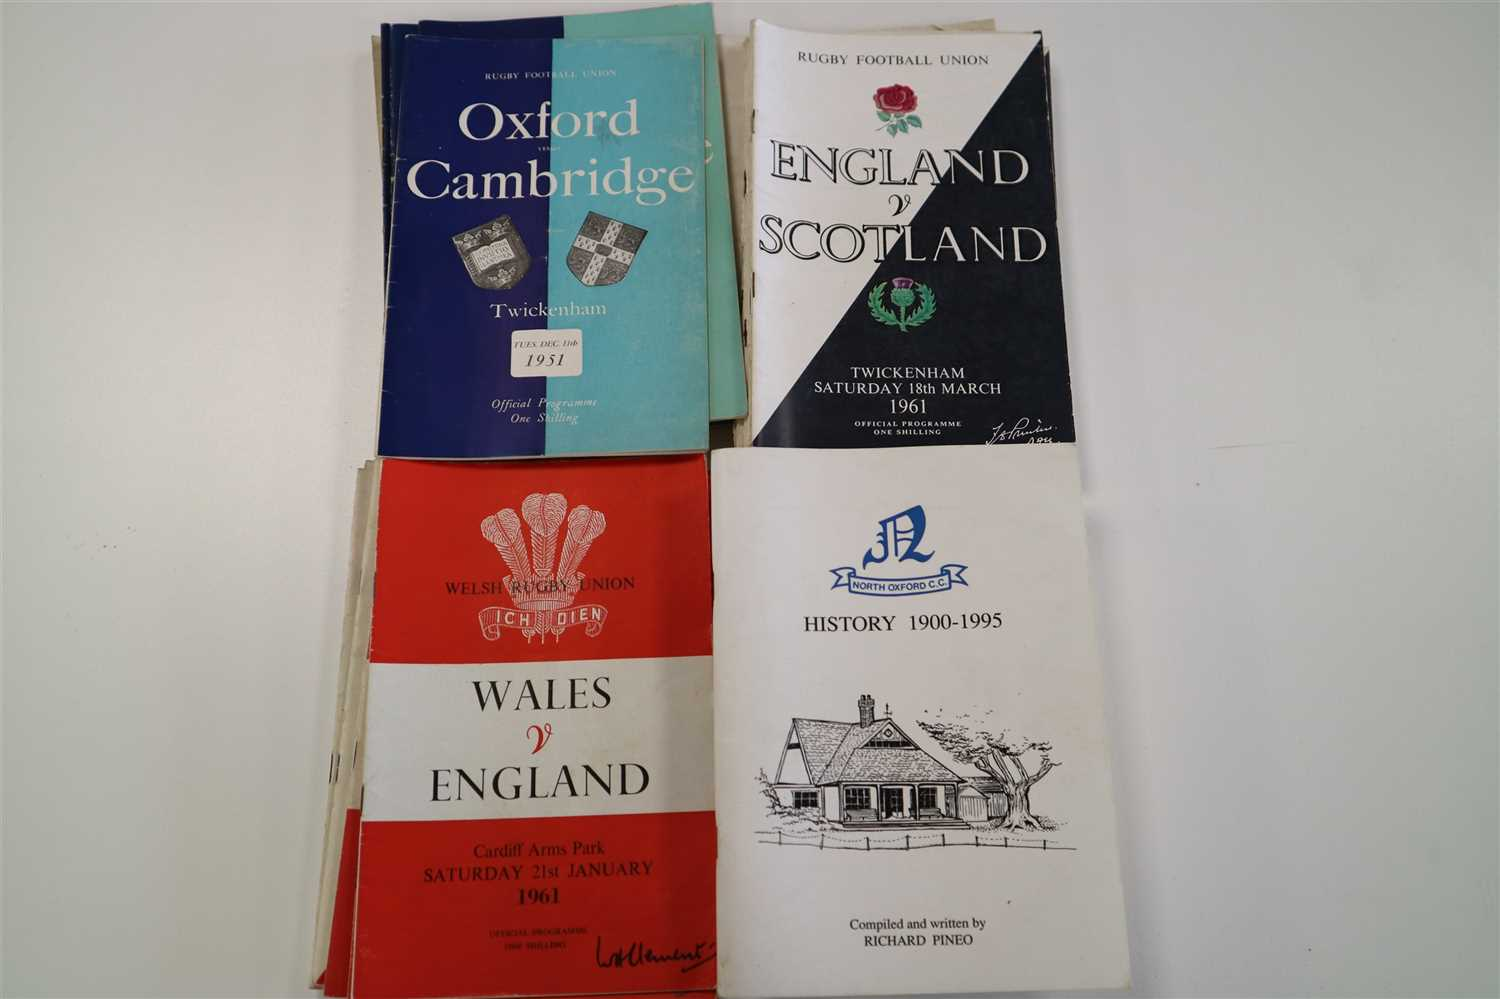 Lot 168 - WISDEN CRICKETERS' ALMANACK, 1944, 45, 46, 47, 49, 50, all soft covers, and 1961 (lacking title) and